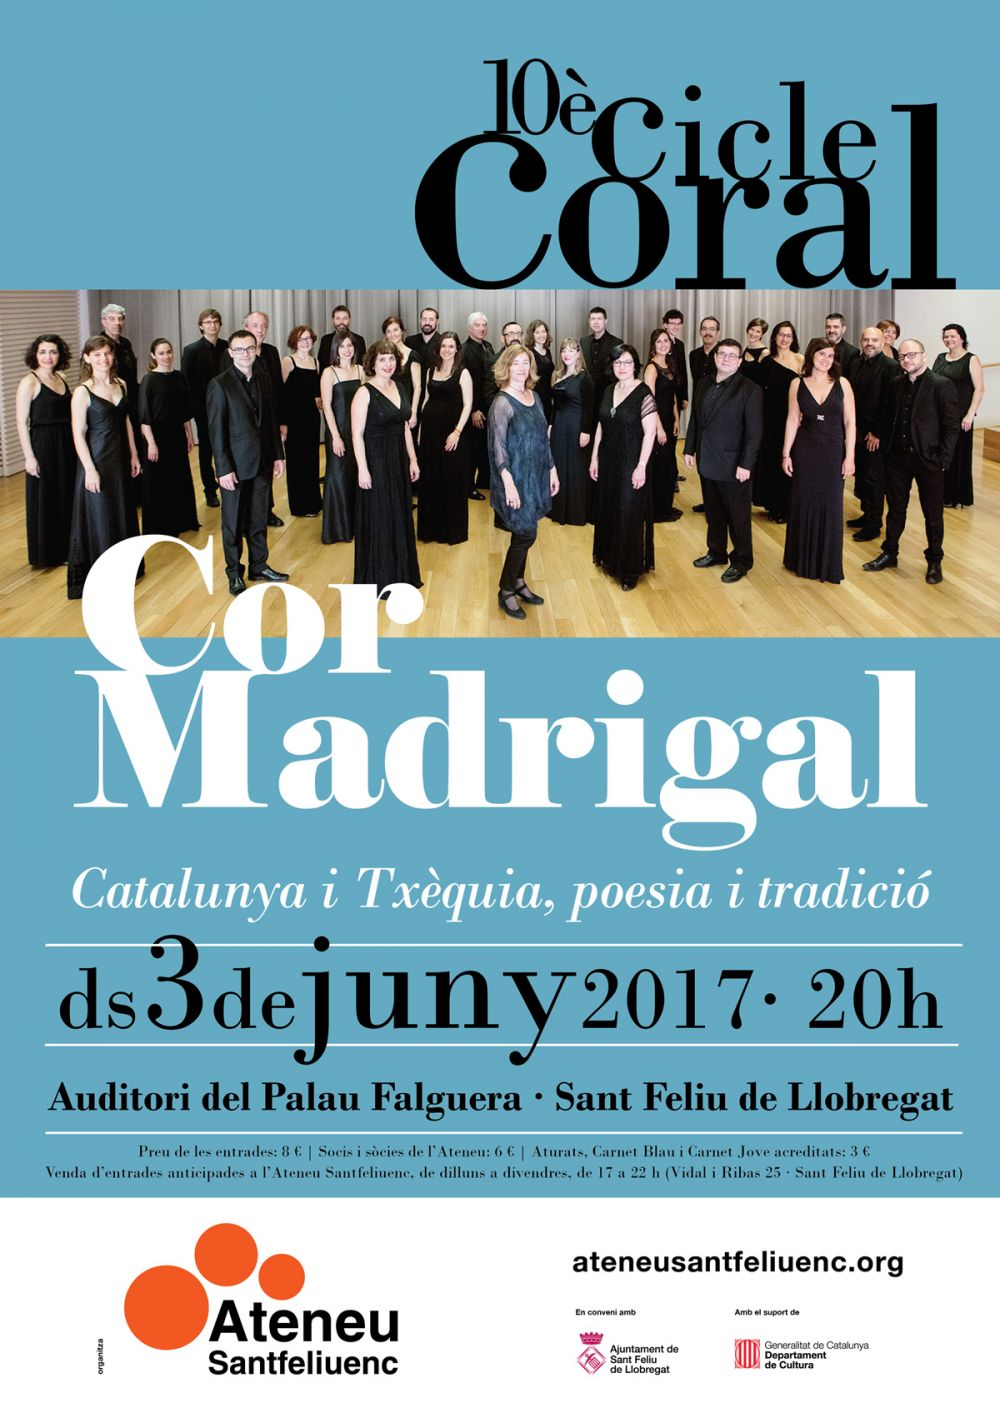 Web del cor madrigal de barcelona for Web del barsa